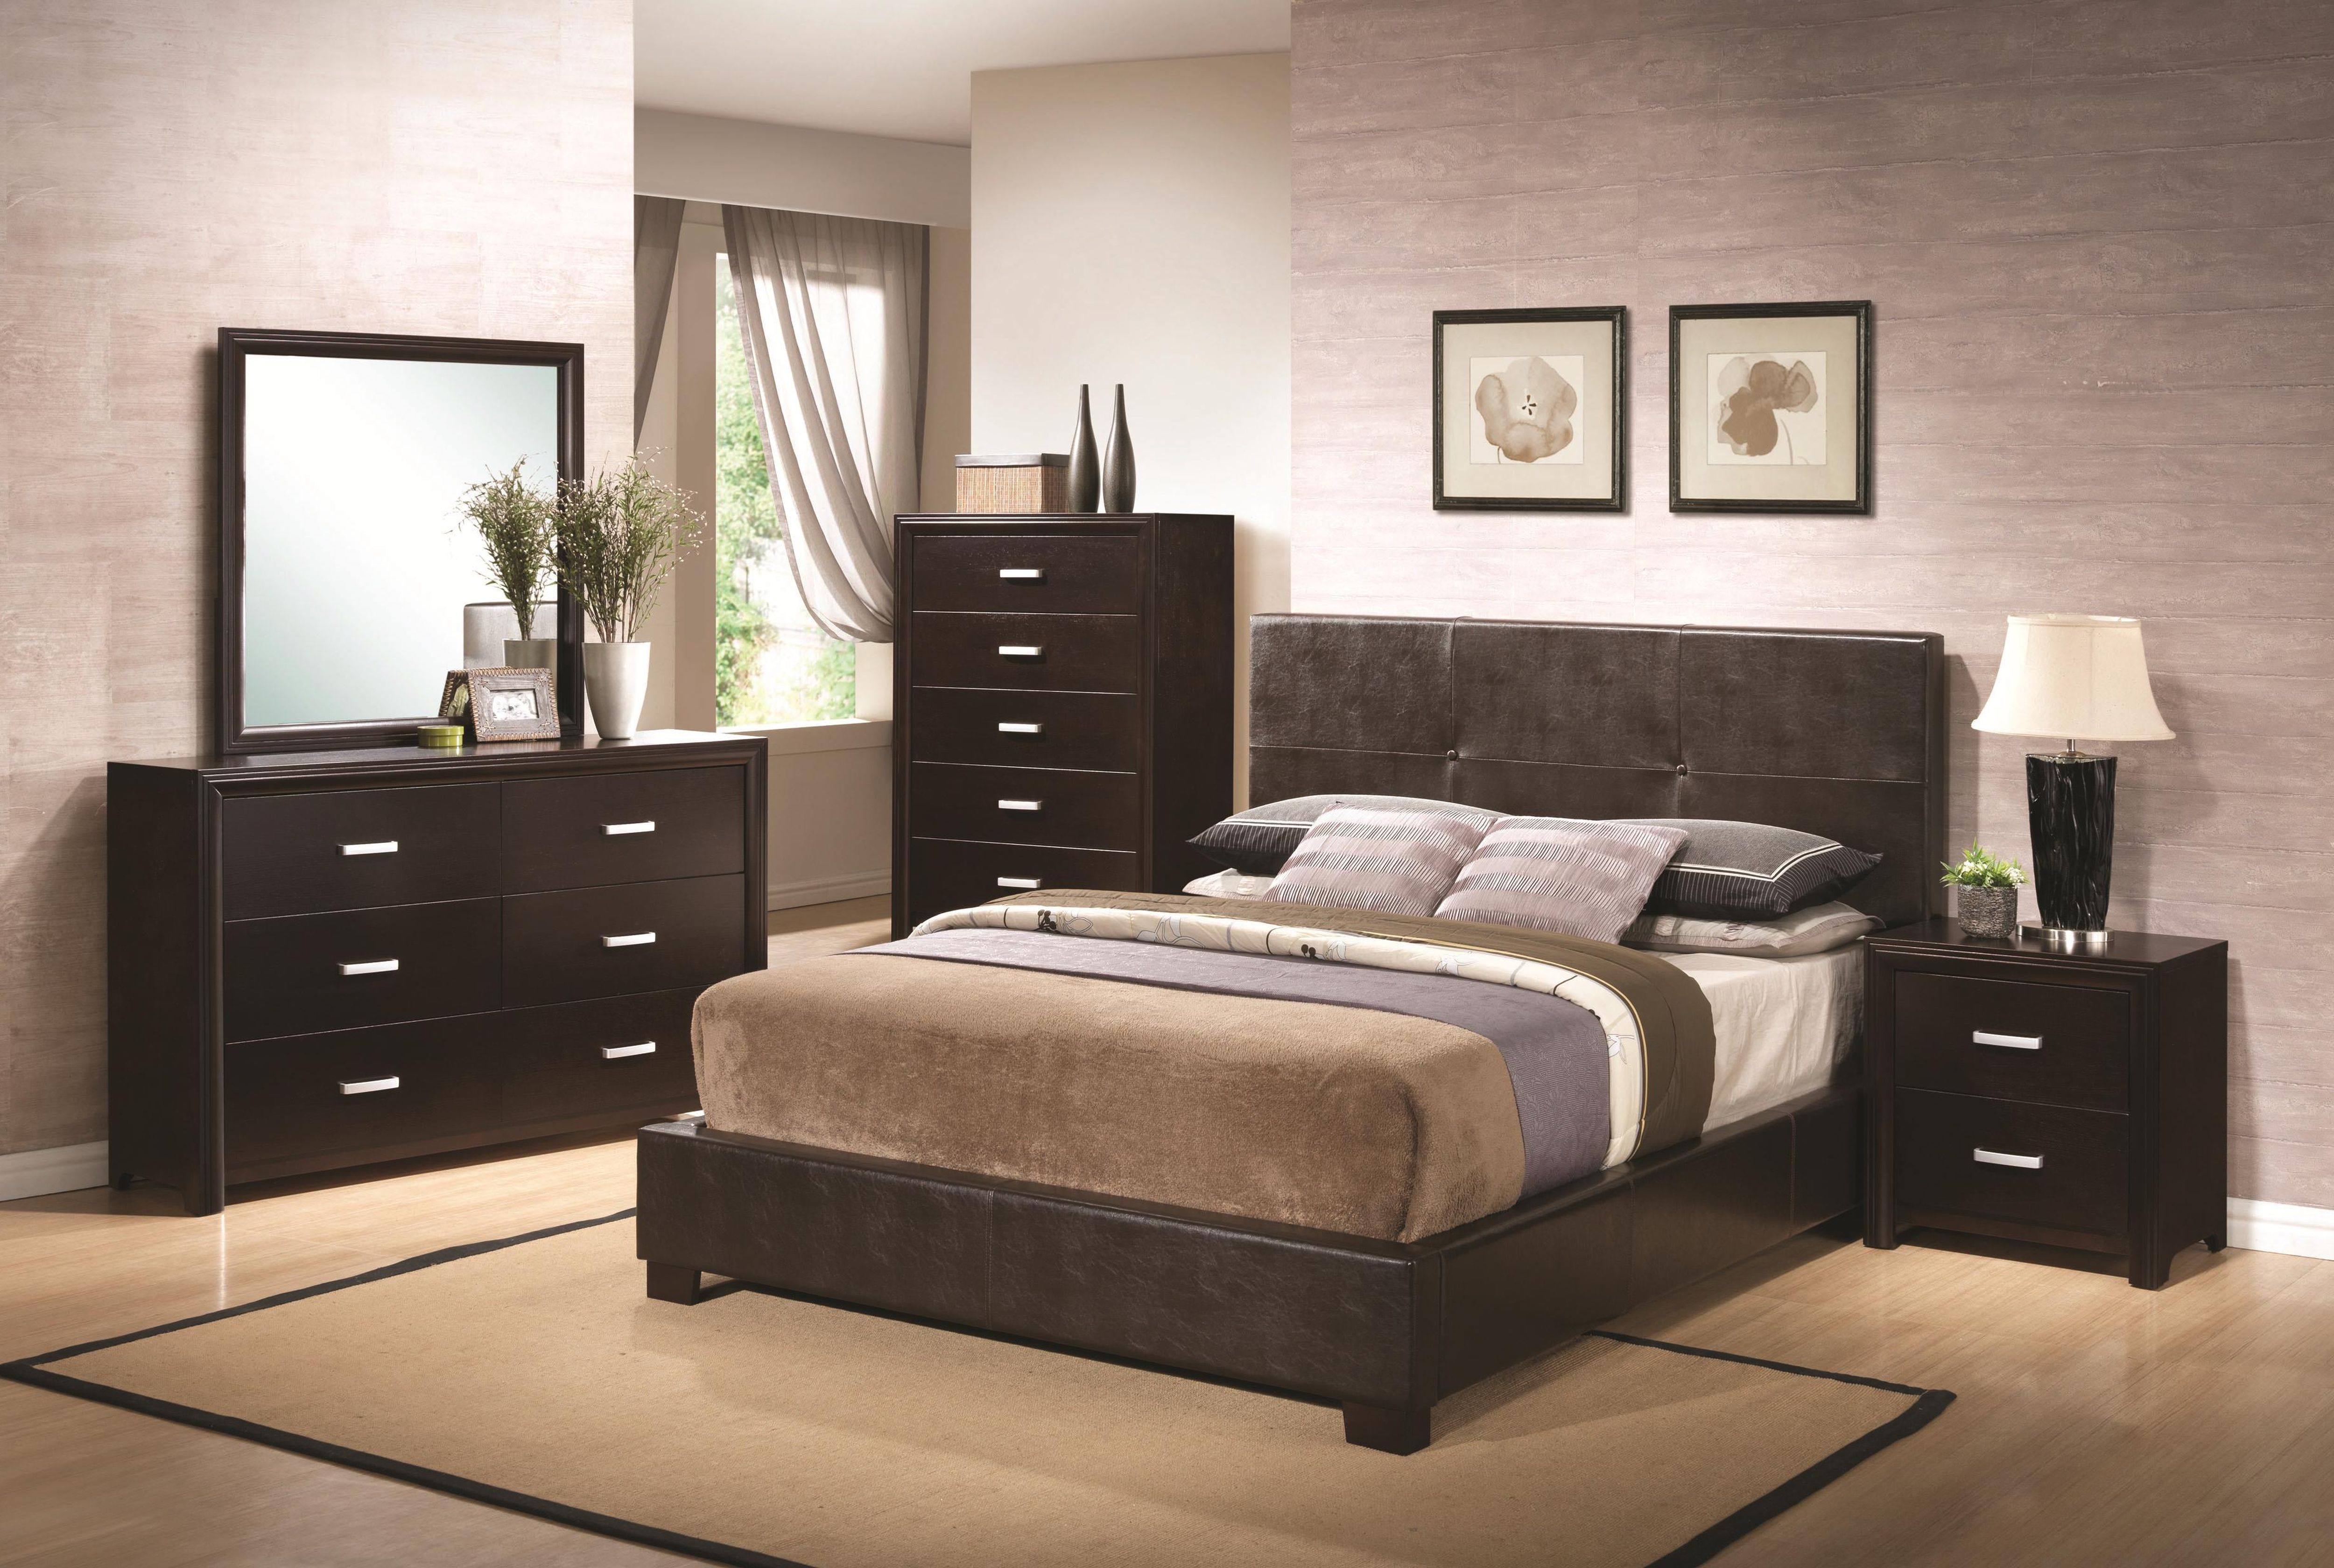 bedroom furniture ideas ikea photo 1 - Ikea Furniture Bedroom